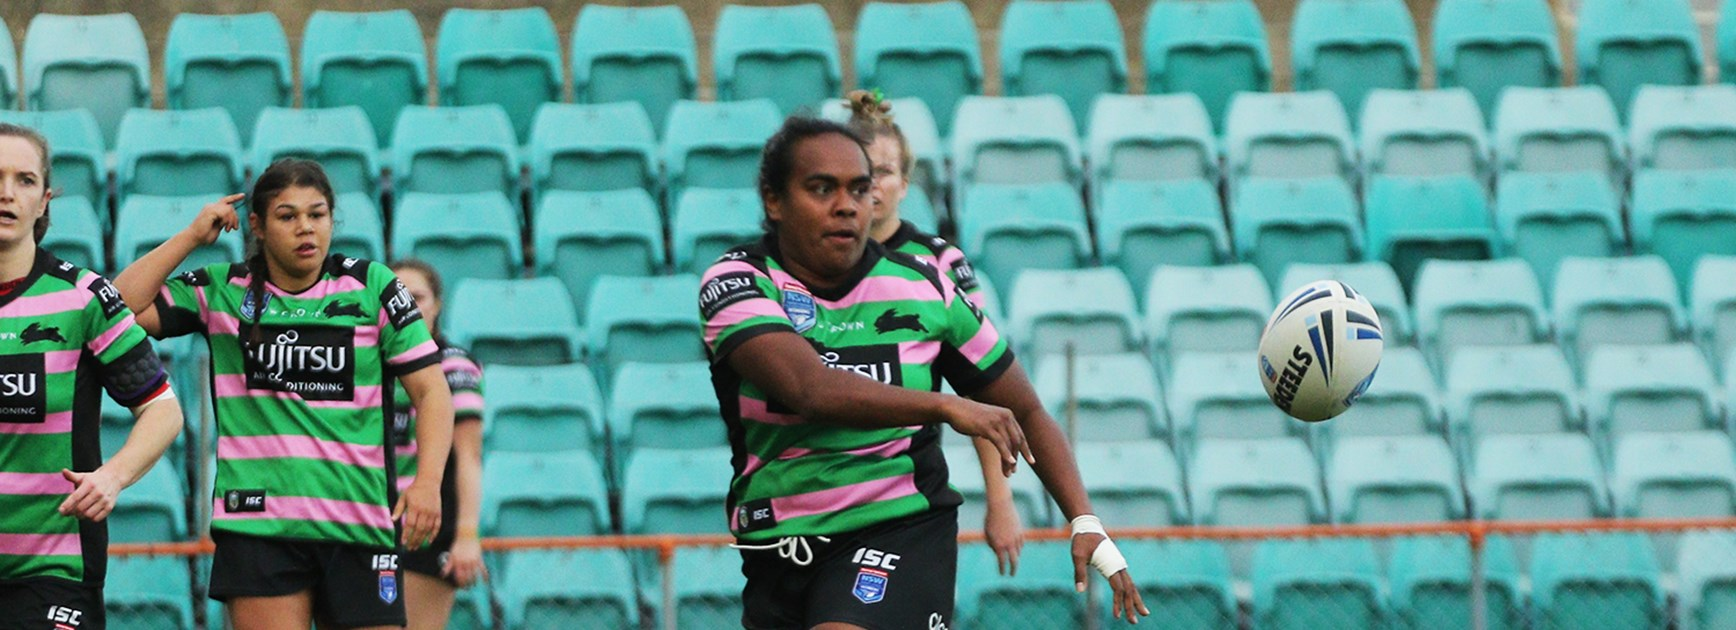 Rabbitohs women fall short in semi-final